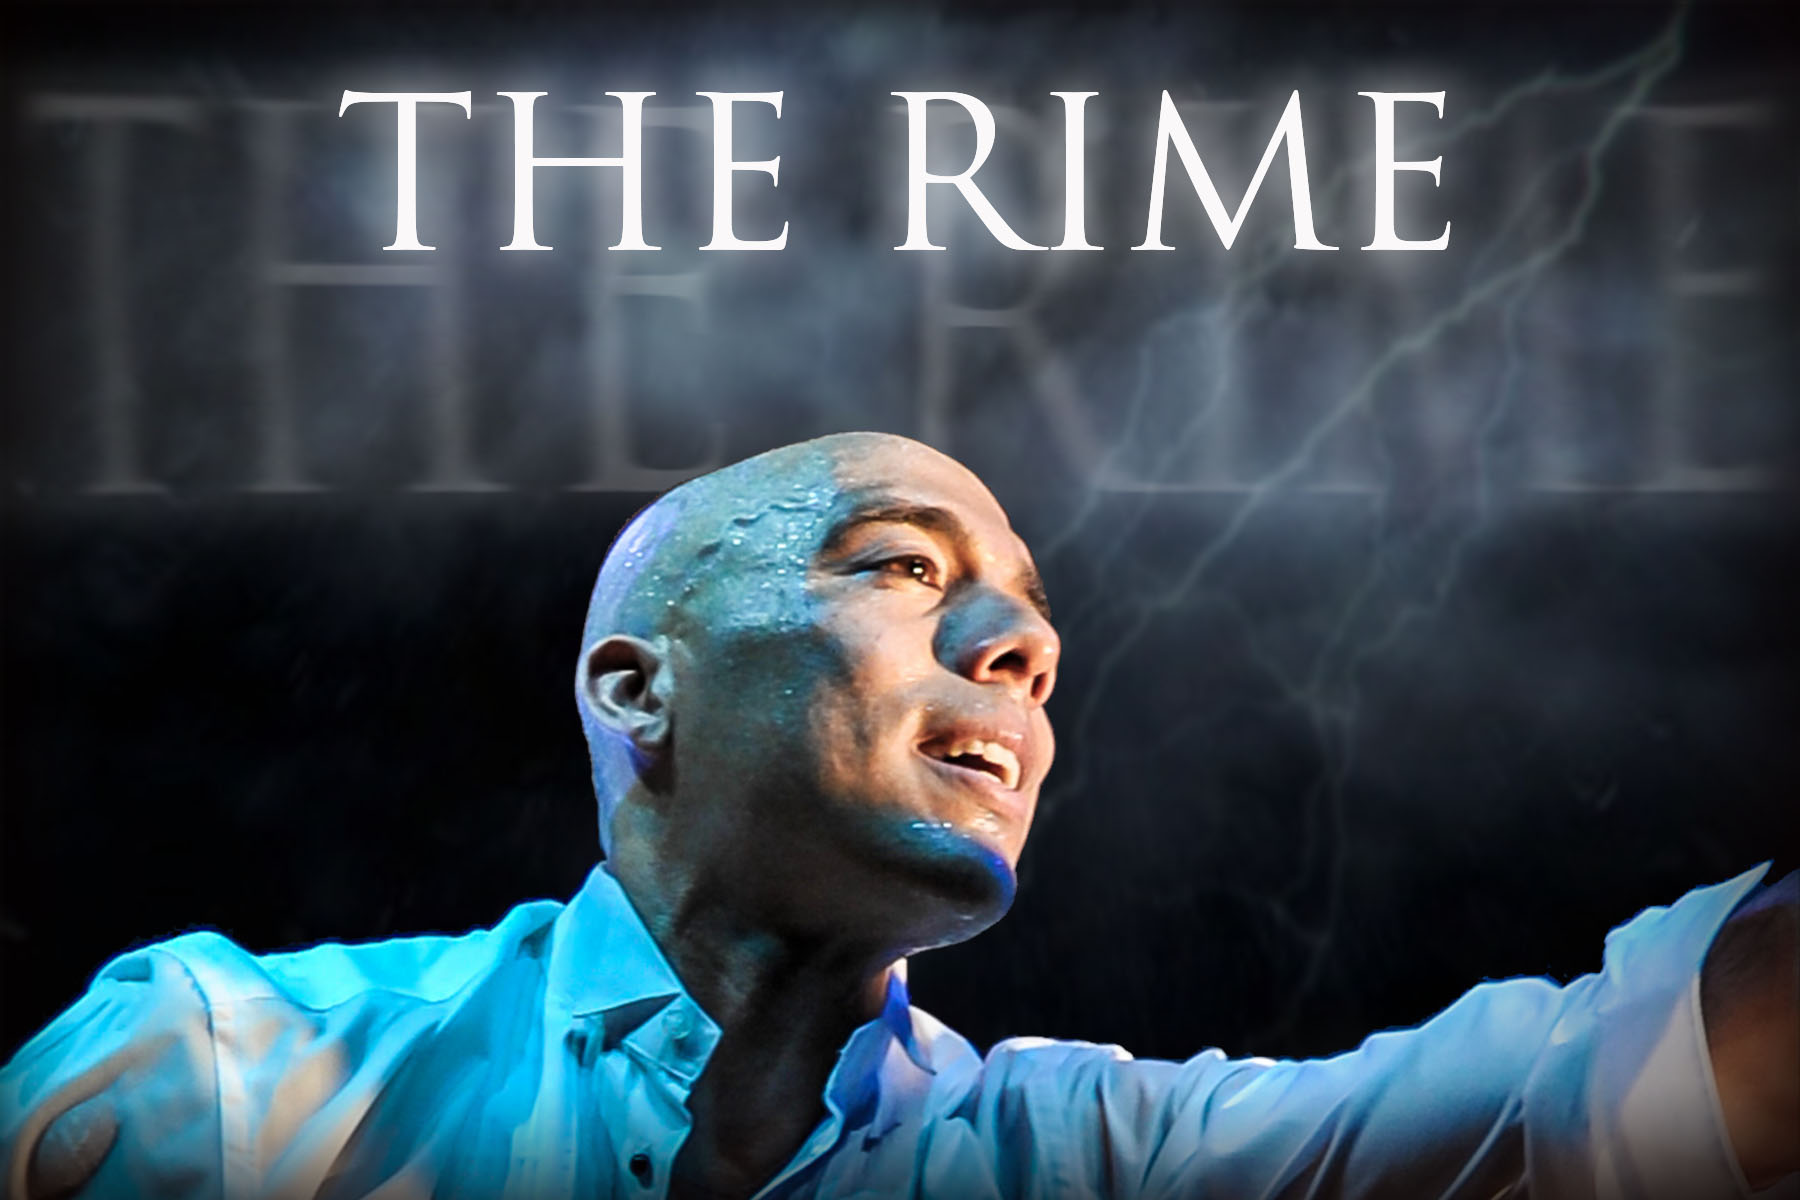 The Rime